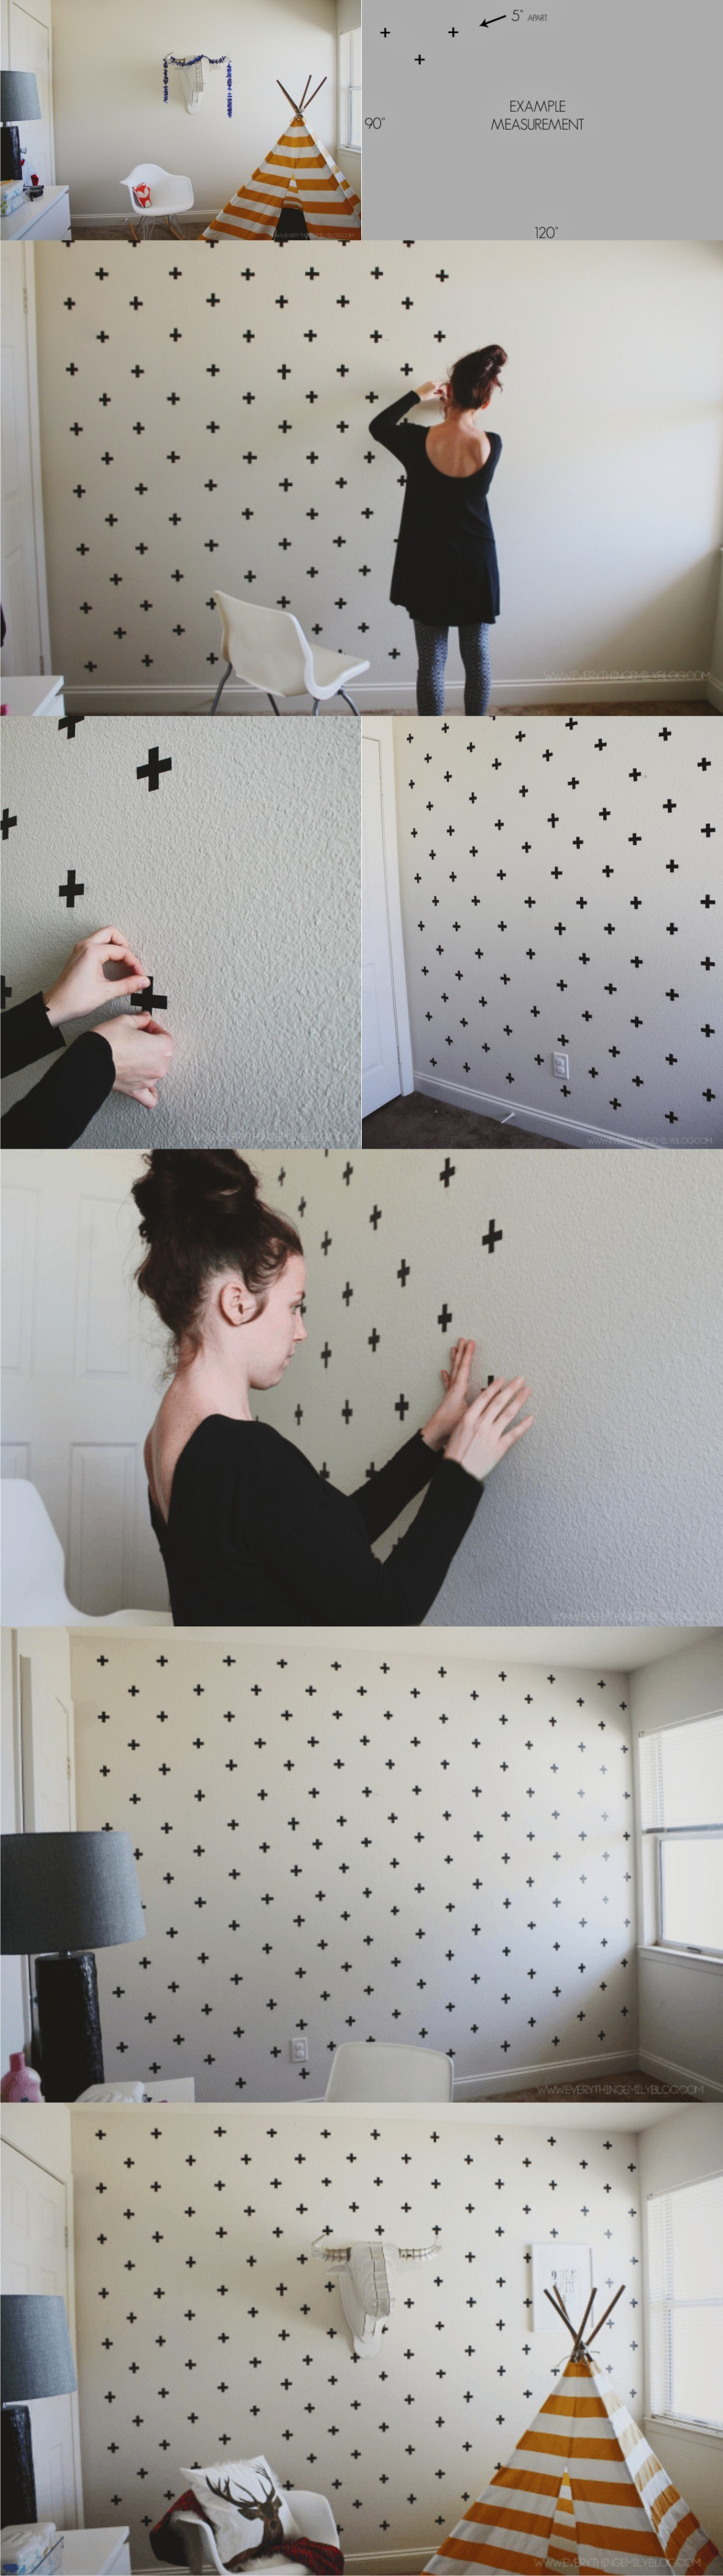 wallart washitape DIY muy ingenioso 2